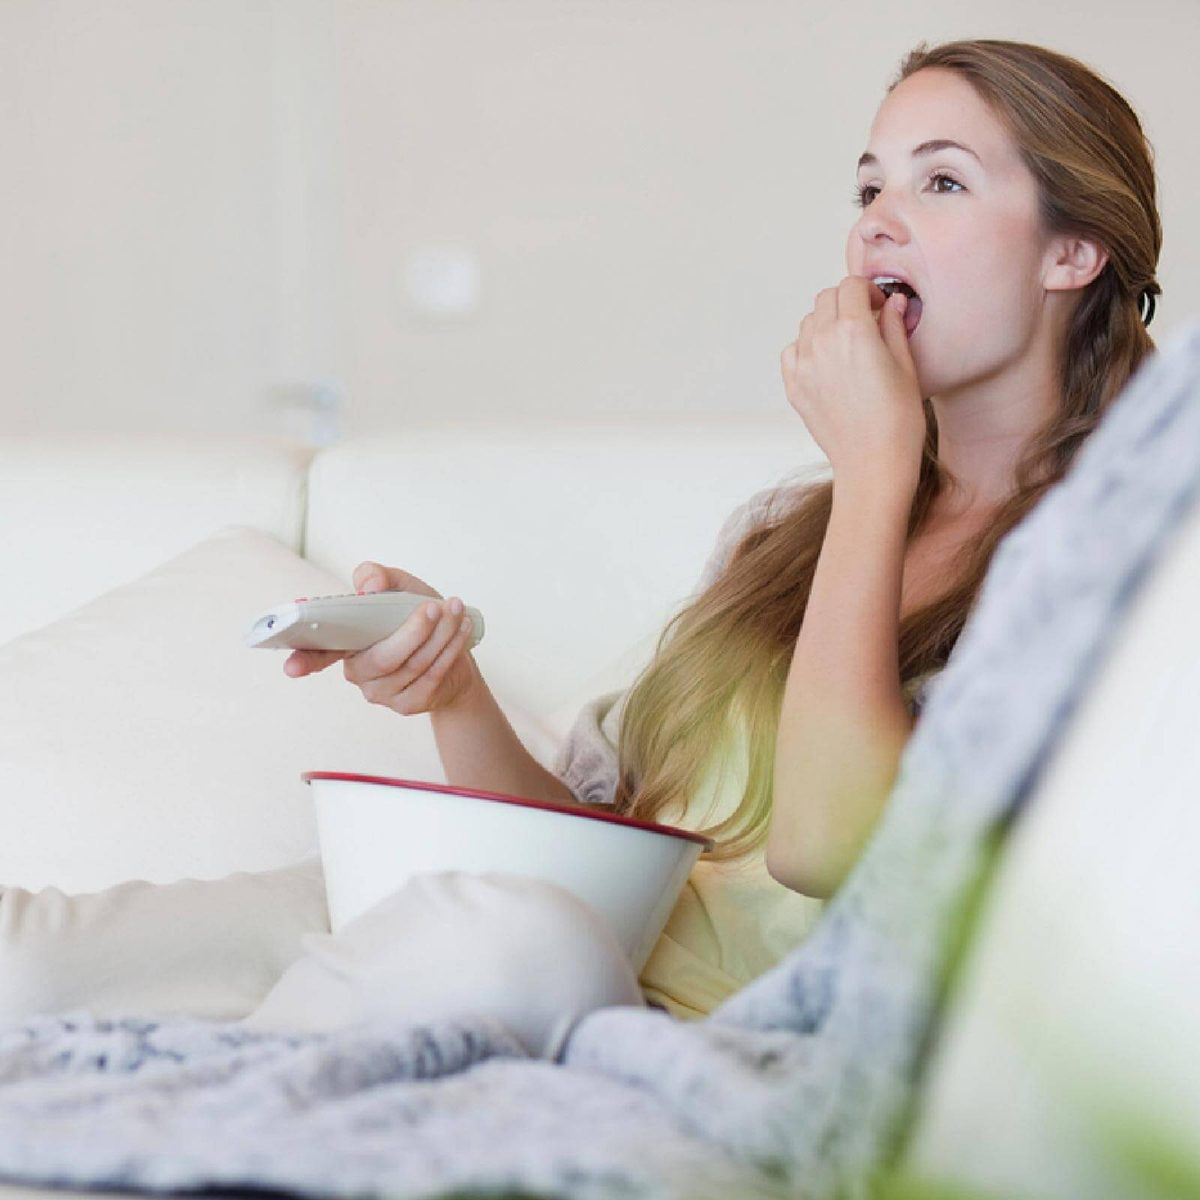 Eating popcorn in front of a tv